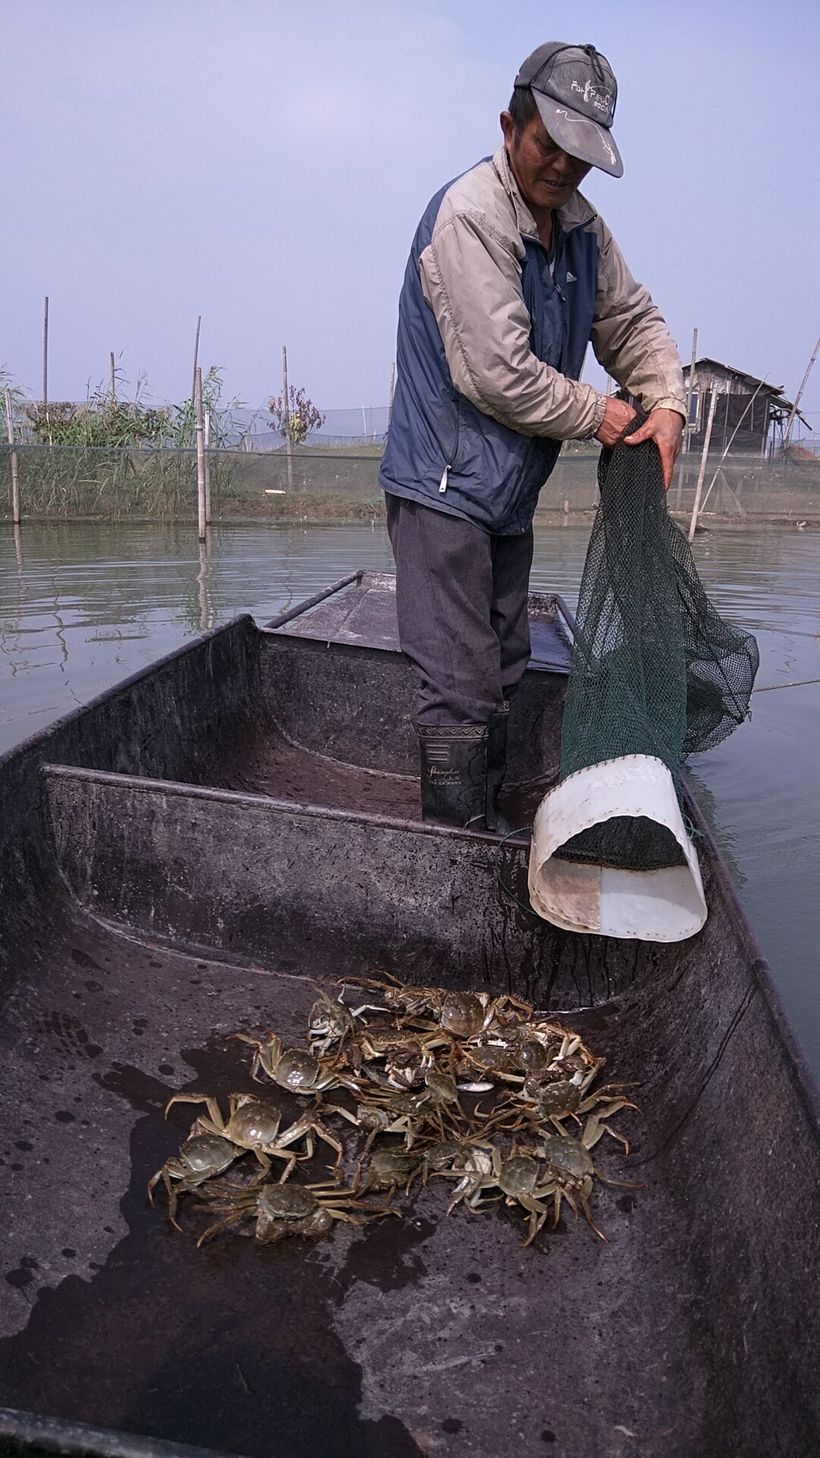 The fisherman pulls in the net of crabs